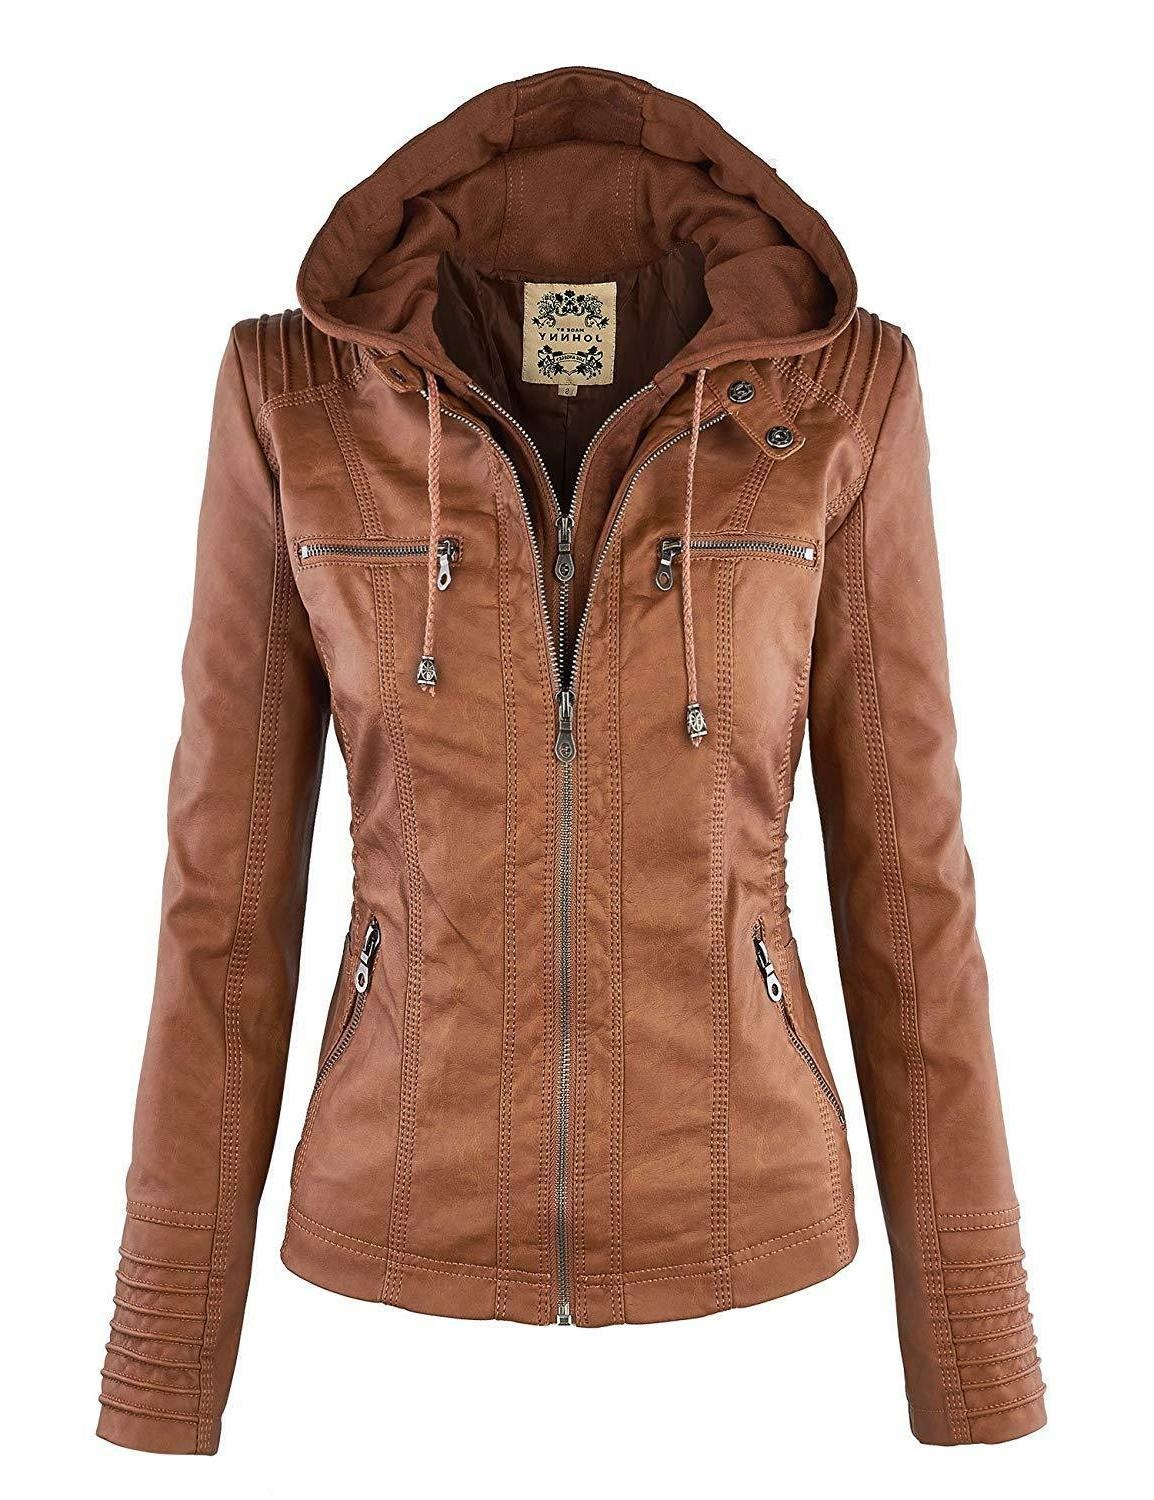 New Made By Johnny WJC663 Womens Removable Hoodie Motorcyle